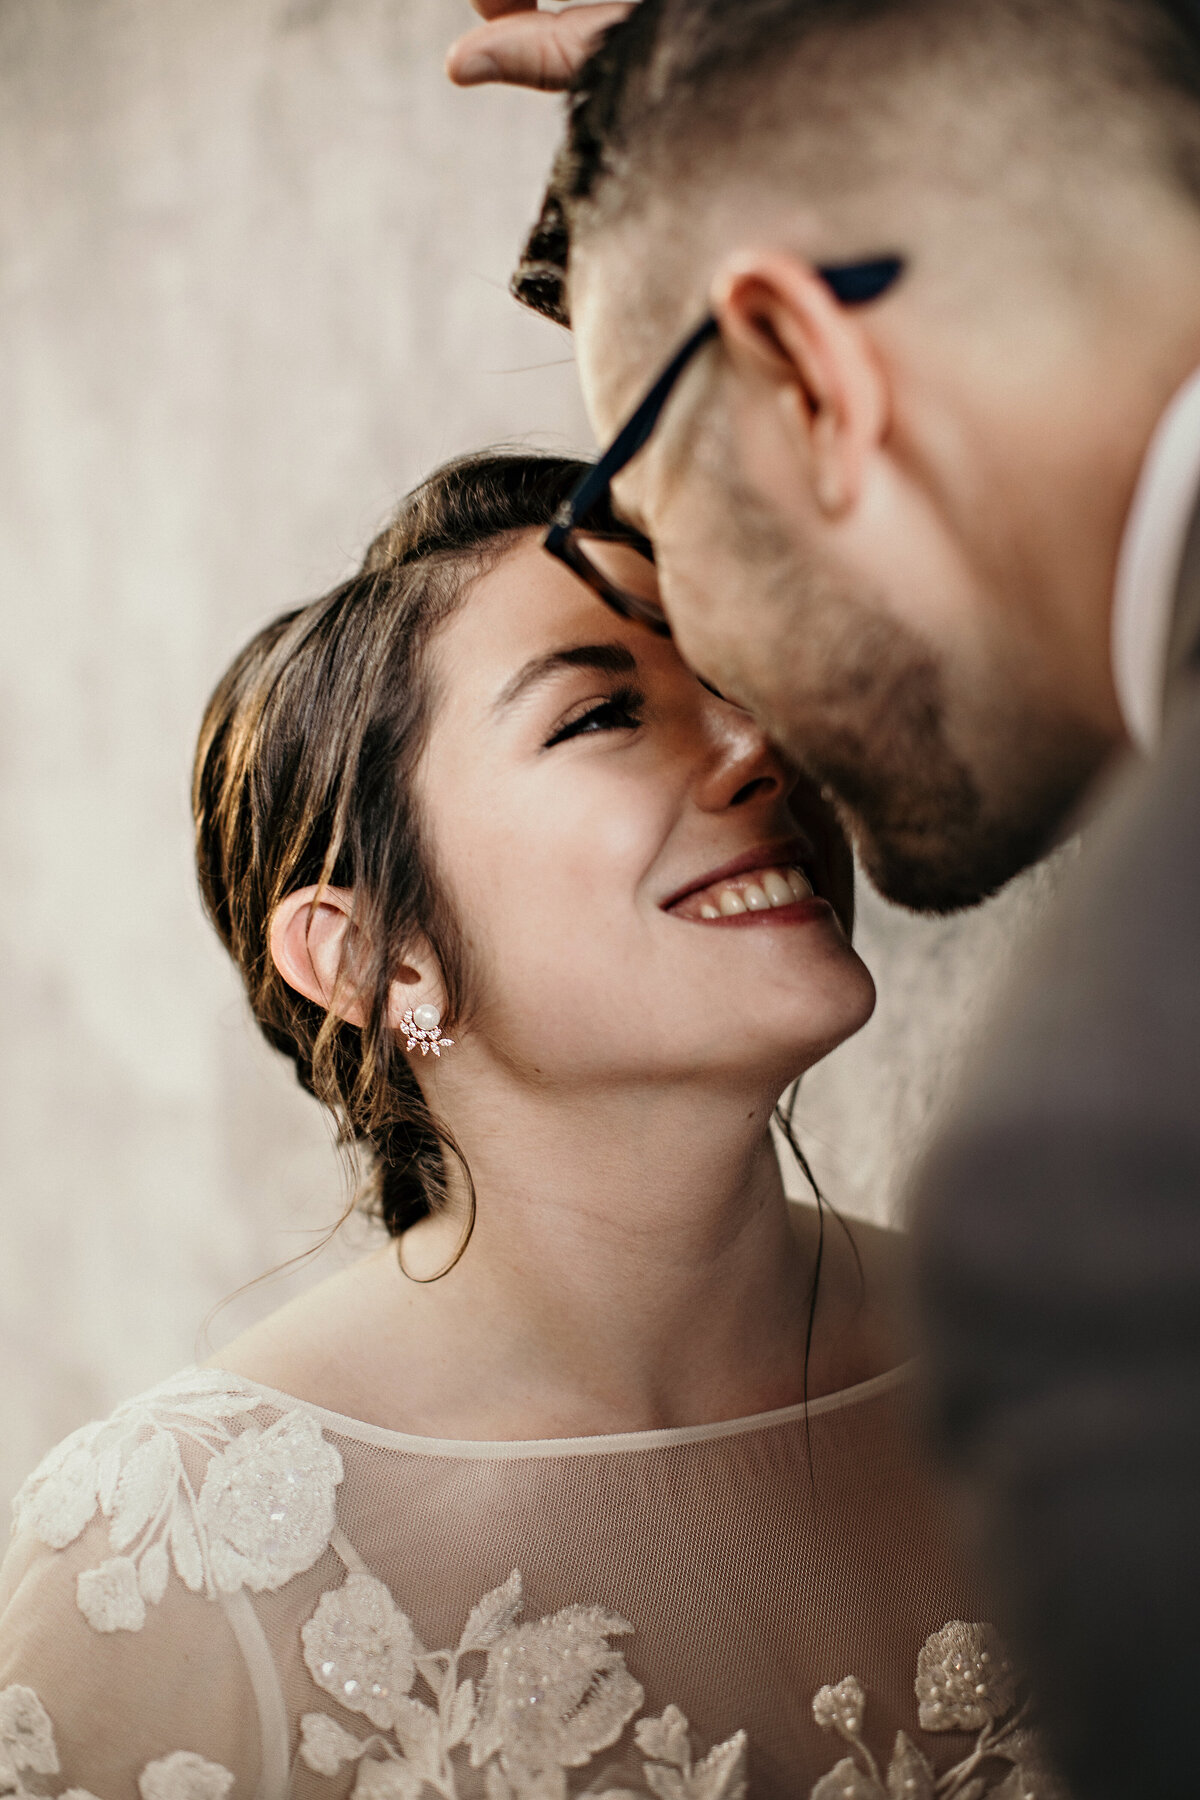 A picture of a closeup view of the bride and groom smiling and tenderly touching noses as they lean in to kiss romantically on their wedding day by Garry & Stacy Photography Co - Clearwater FL wedding photographer